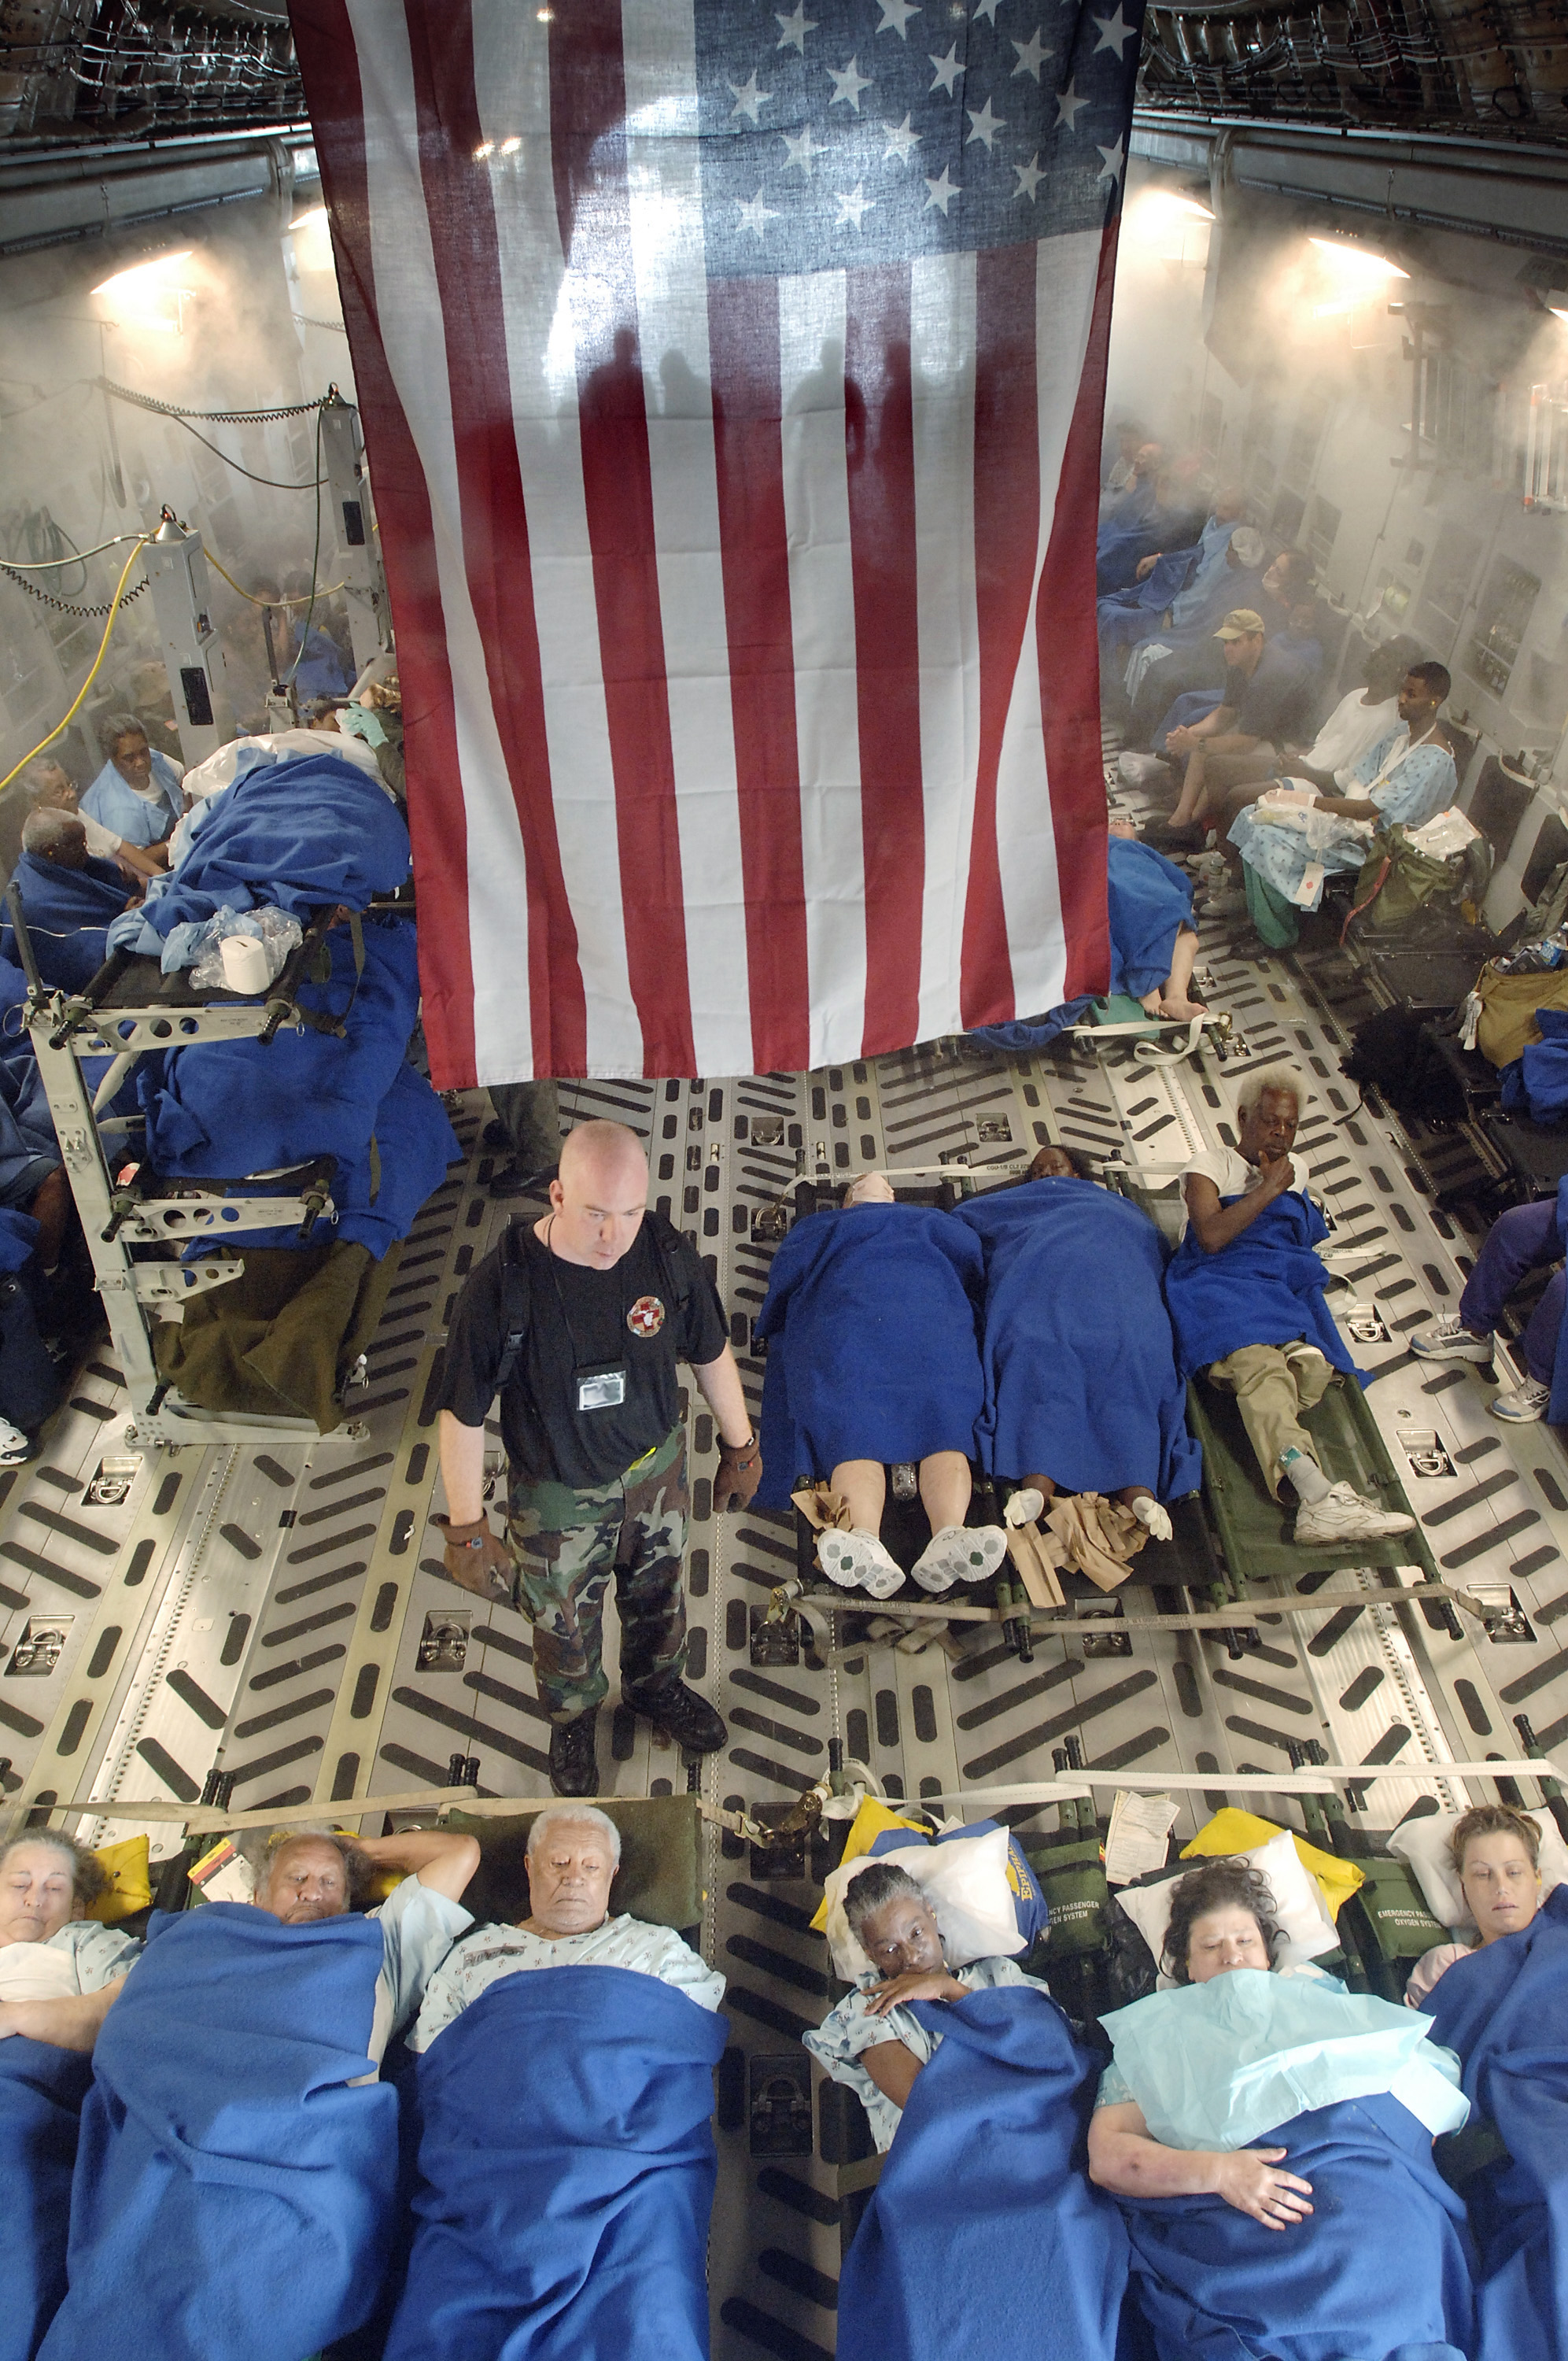 File:Air Force Flight Nurse caring for Hurricane Katrina victims.jpg ... Hurricanekatrina